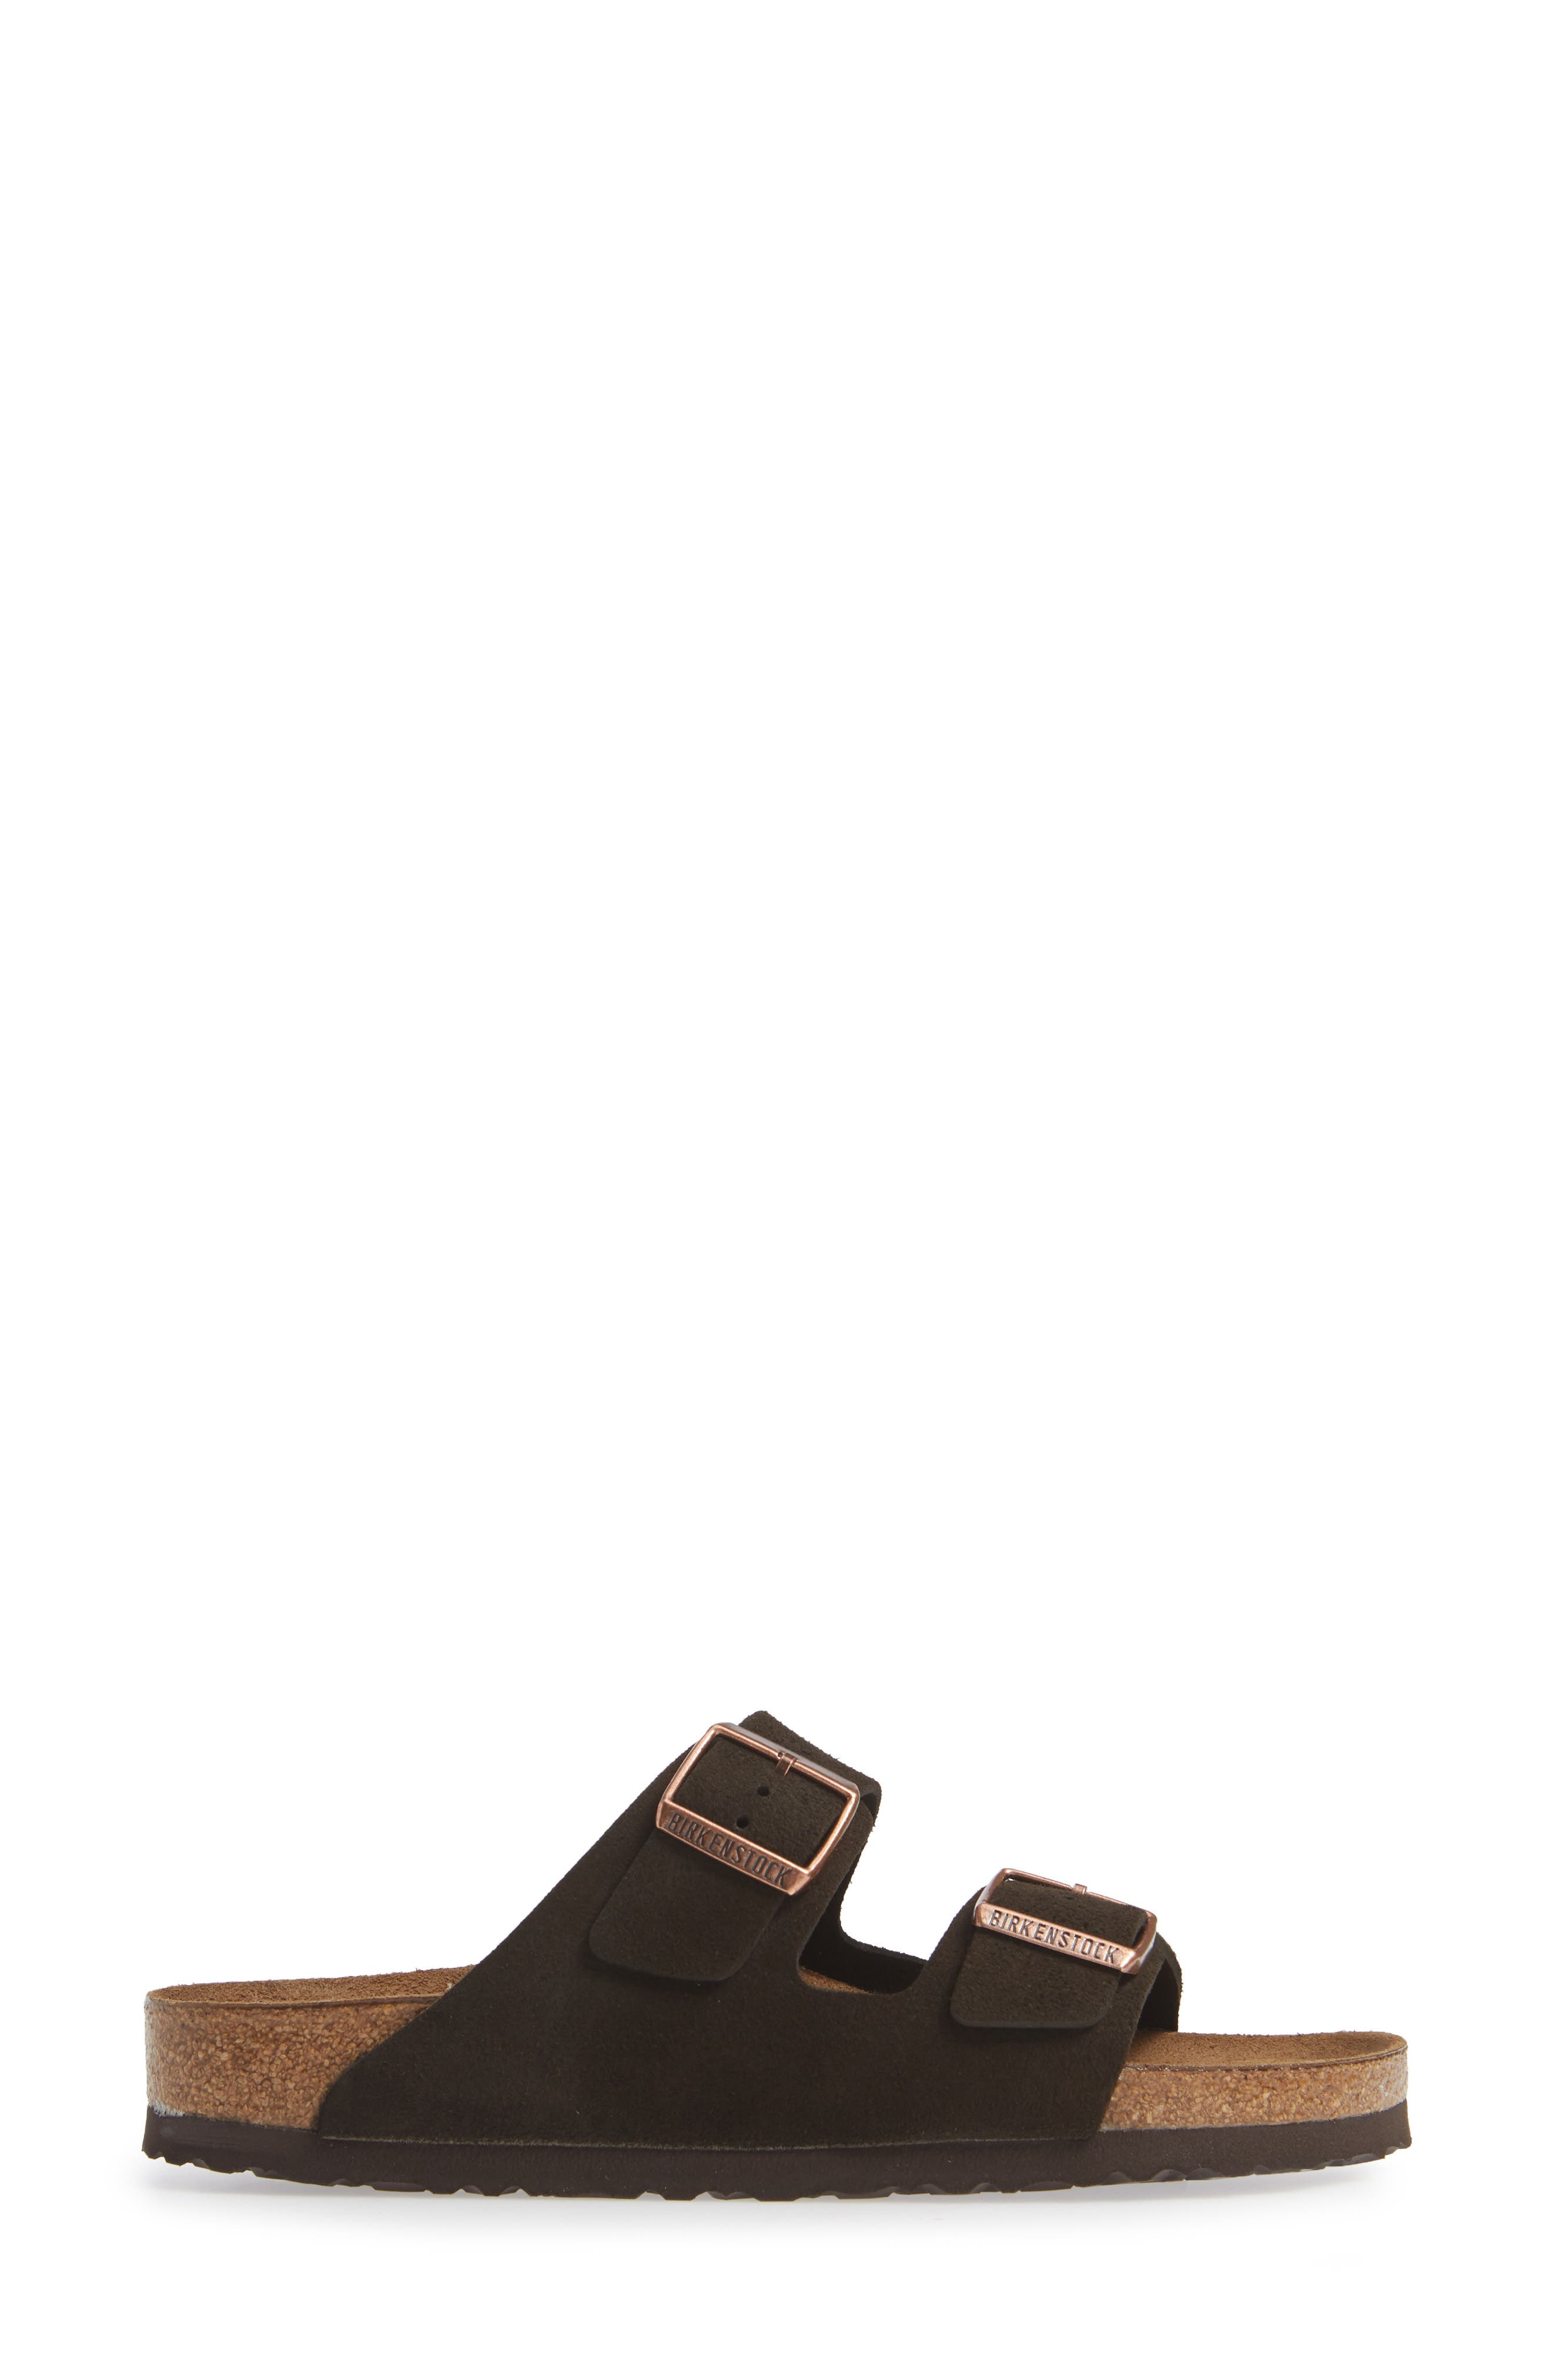 BIRKENSTOCK, 'Arizona' Soft Footbed Suede Sandal, Alternate thumbnail 3, color, MOCHA SUEDE